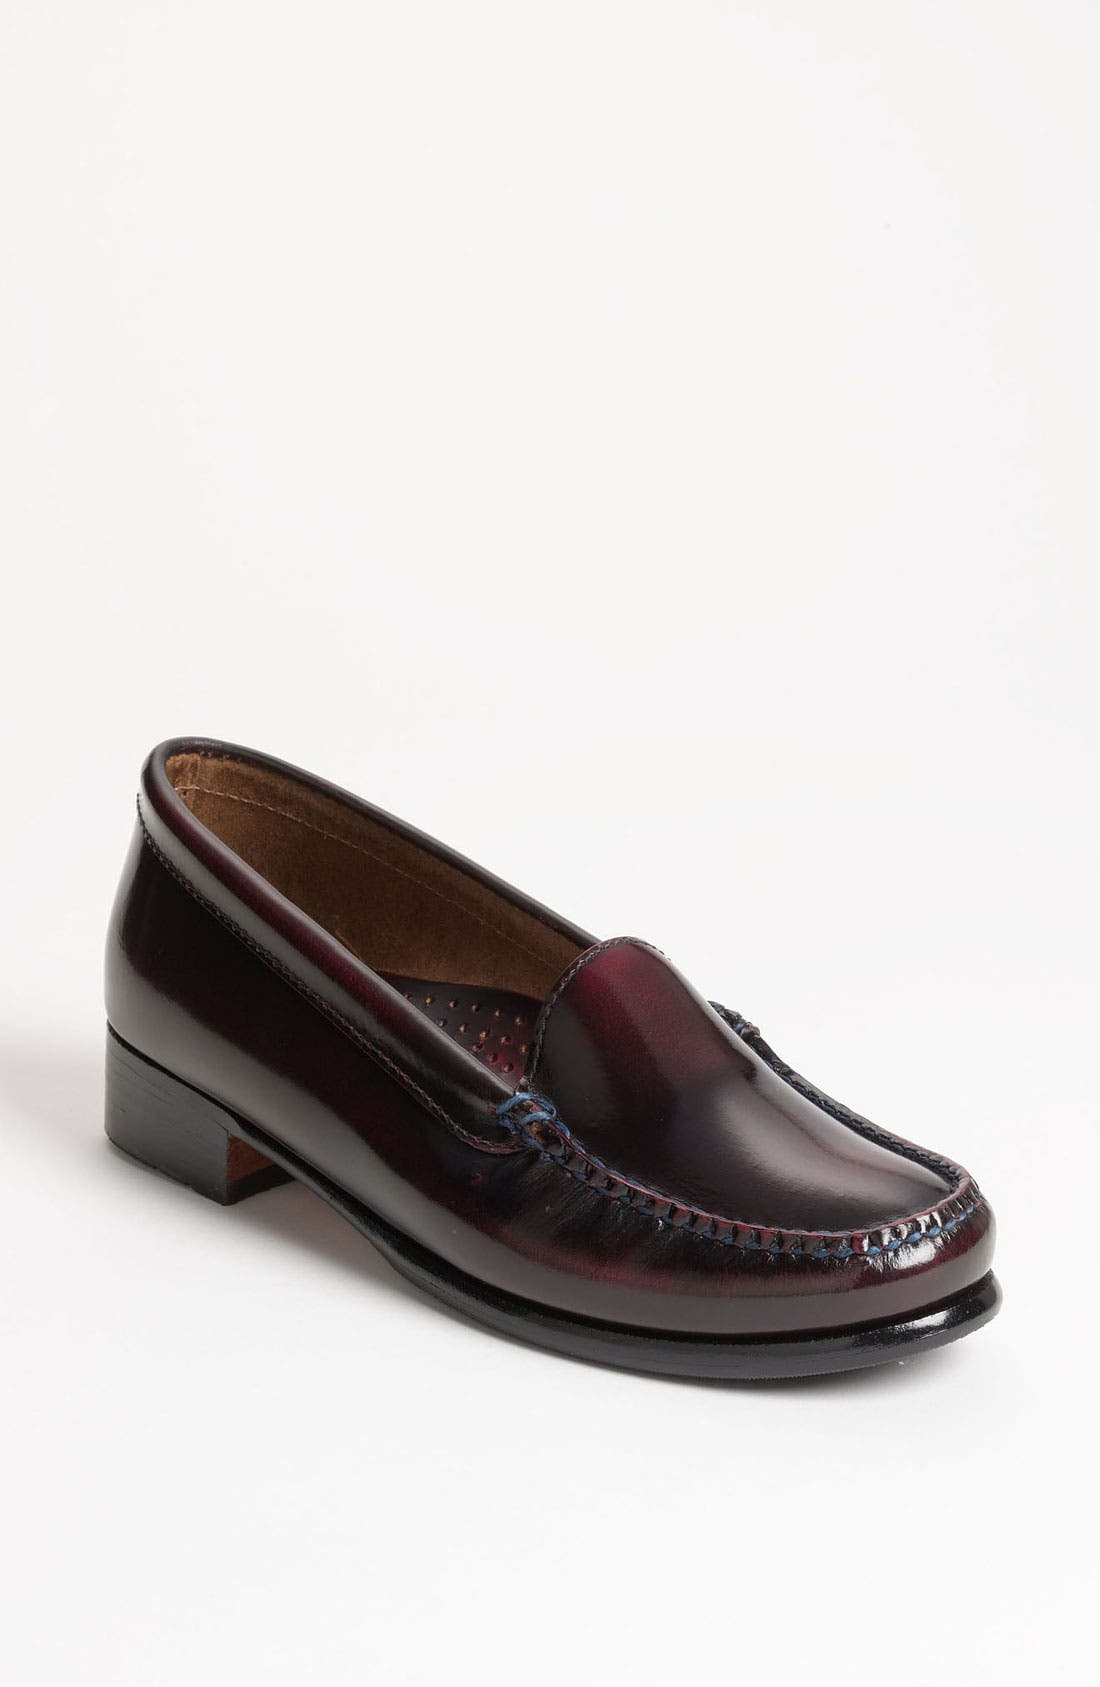 Alternate Image 1 Selected - G.H. Bass & Co. 'Madison' Loafer